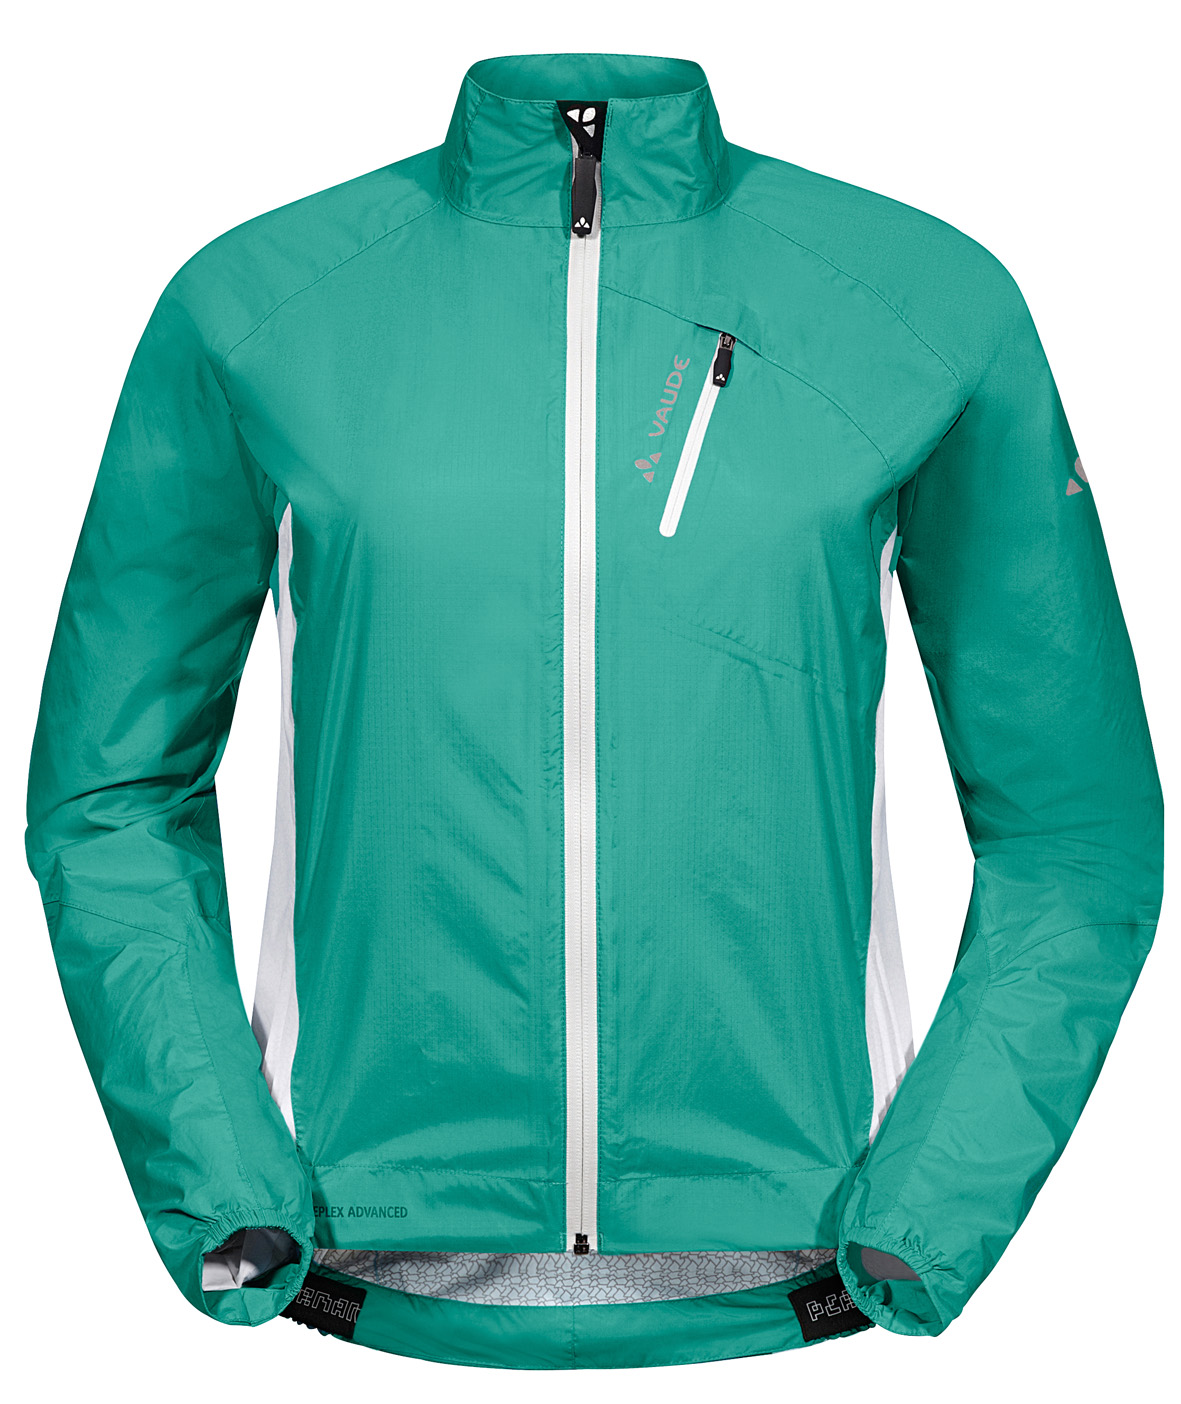 VAUDE Women´s Spray Jacket IV lotus green Größe 40 - schneider-sports